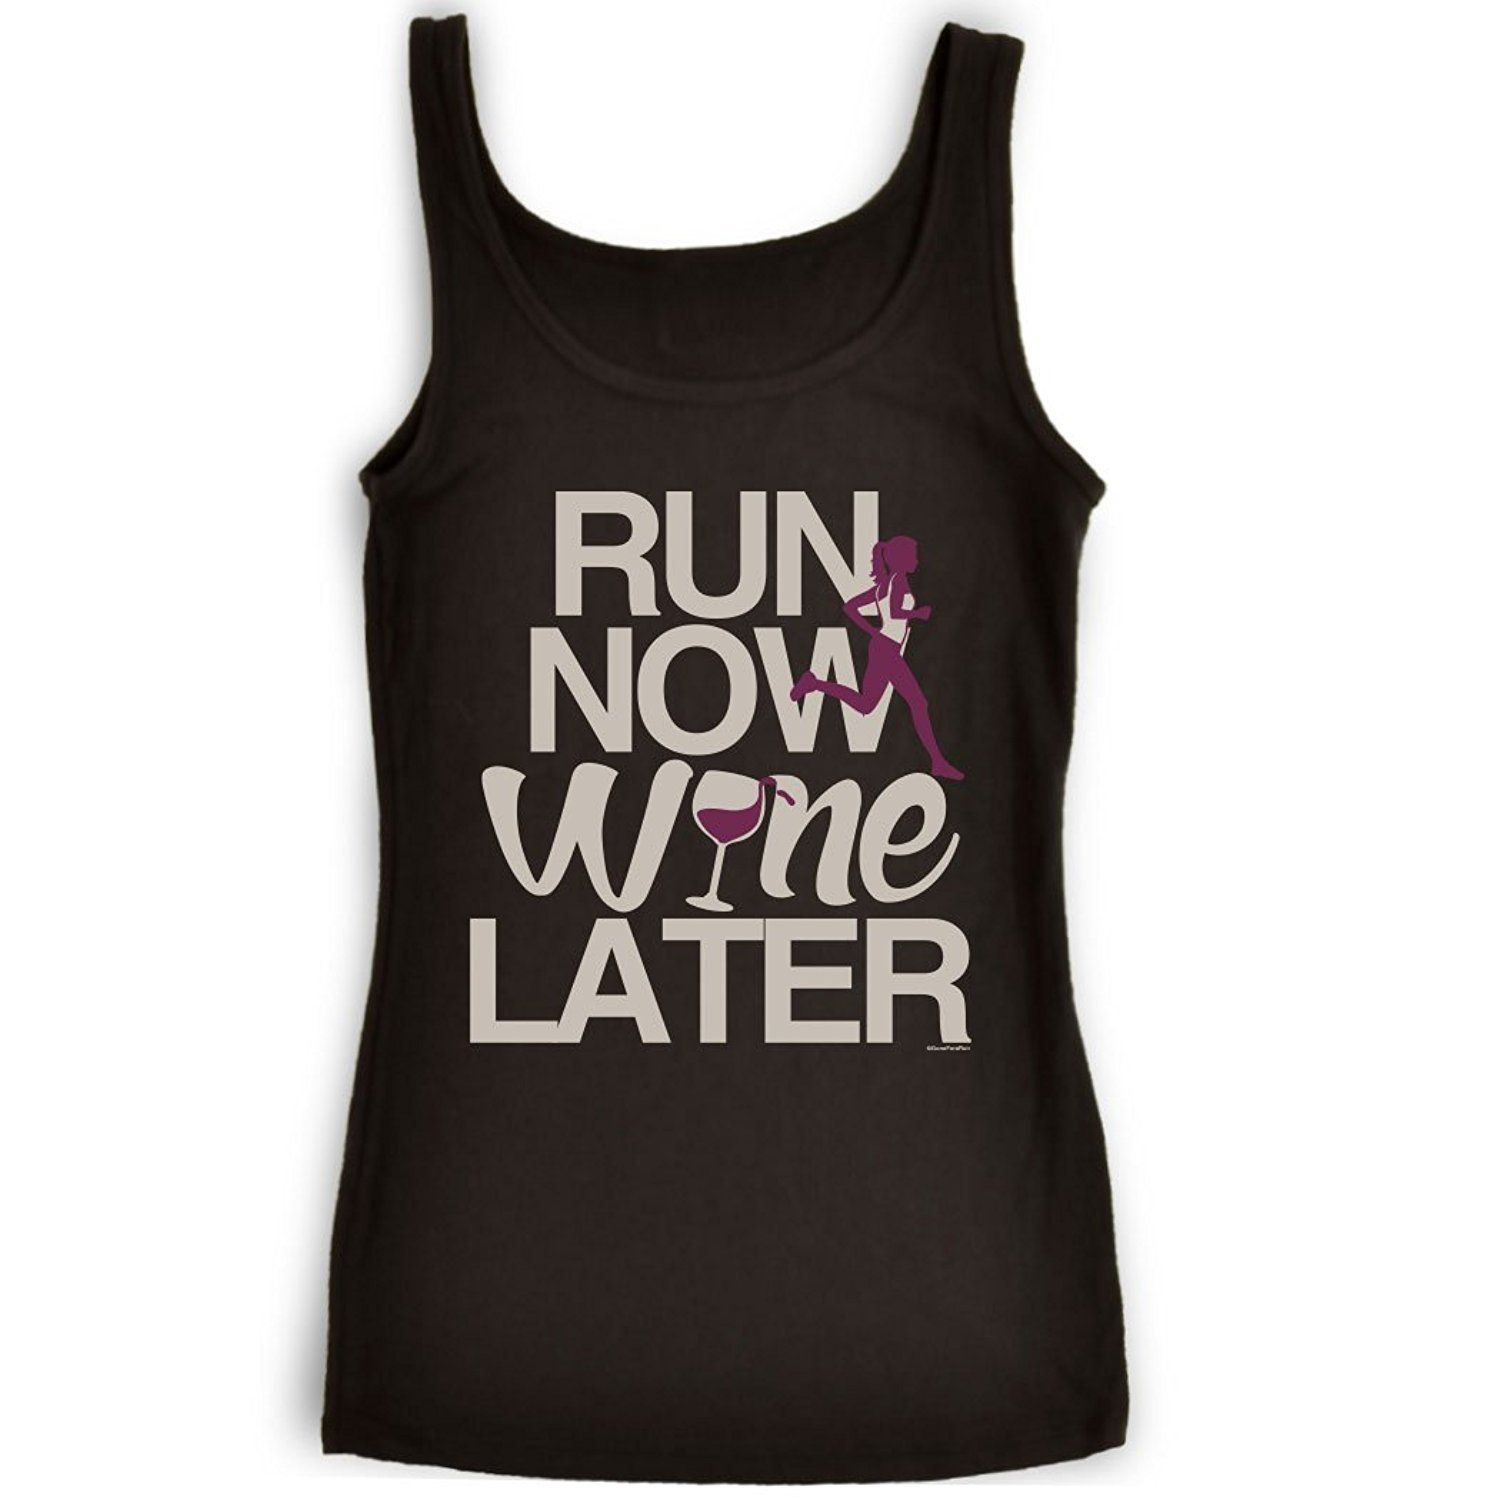 Womens Running Tank Top | Run Now Wine Later (Bold) | Multiple Sizes and Colors at Amazon Women's Clothing store:  https://www.amazon.com/gp/product/B00S8MVP60/ref=as_li_qf_sp_asin_il_tl?ie=UTF8&tag=rockaclothsto_fitness-20&camp=1789&creative=9325&linkCode=as2&creativeASIN=B00S8MVP60&linkId=af5ba89ffaf19b92e24b0319cc472282